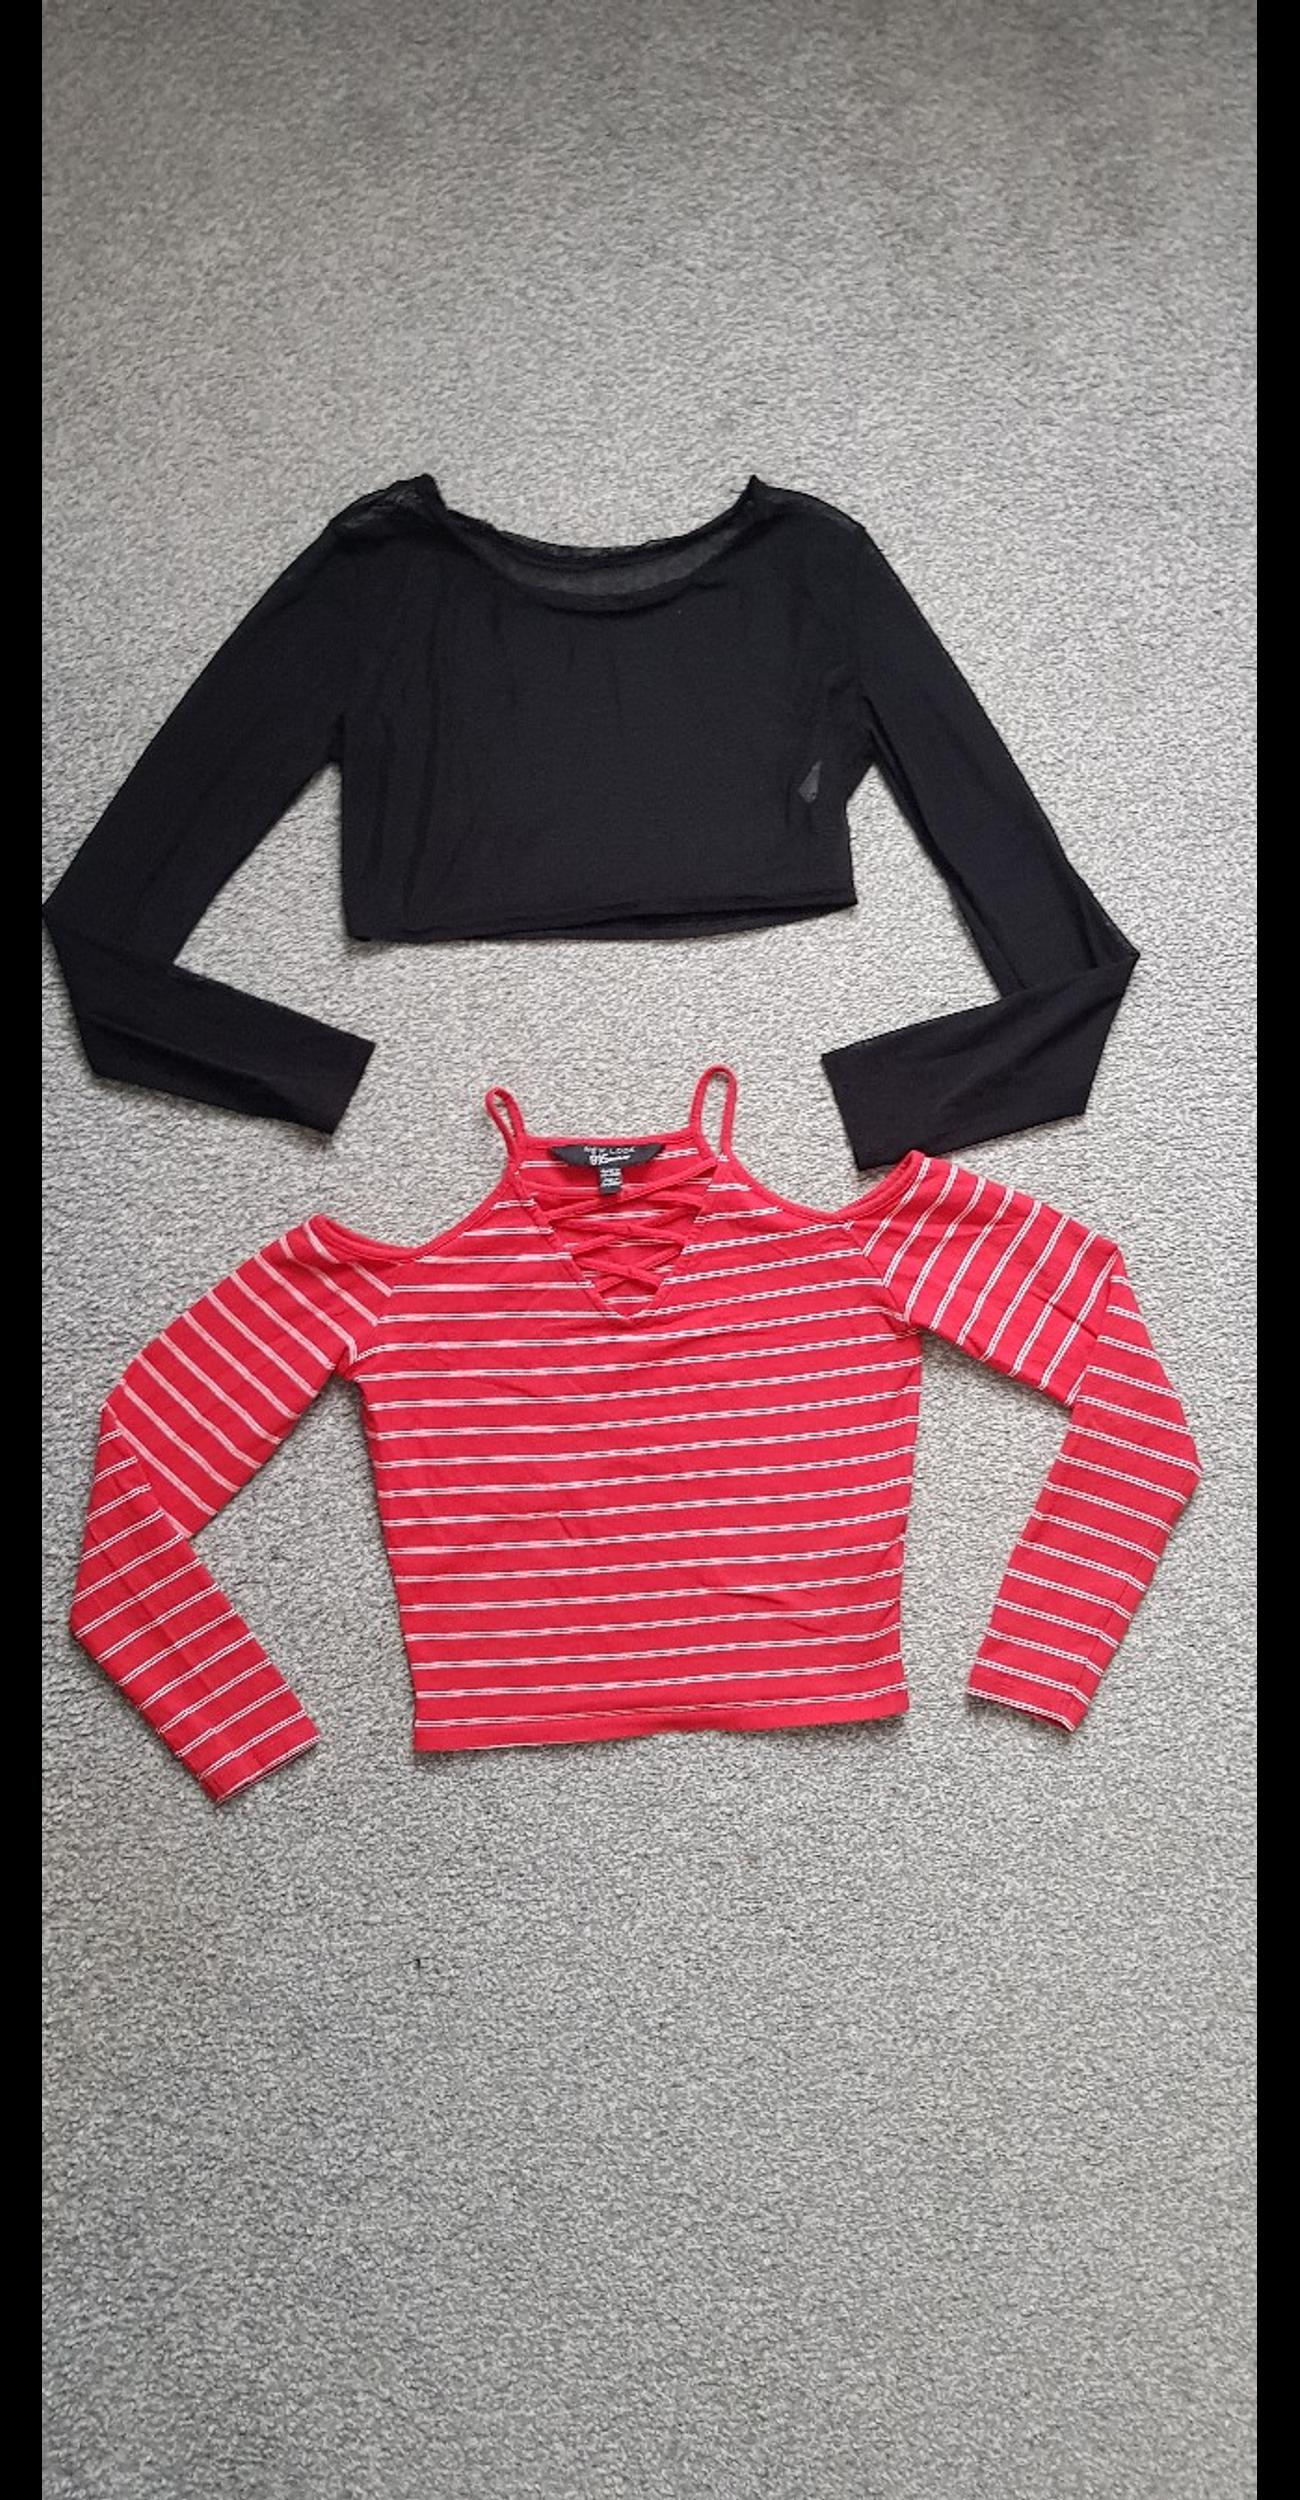 Selling two crop tops used but still in good condition.